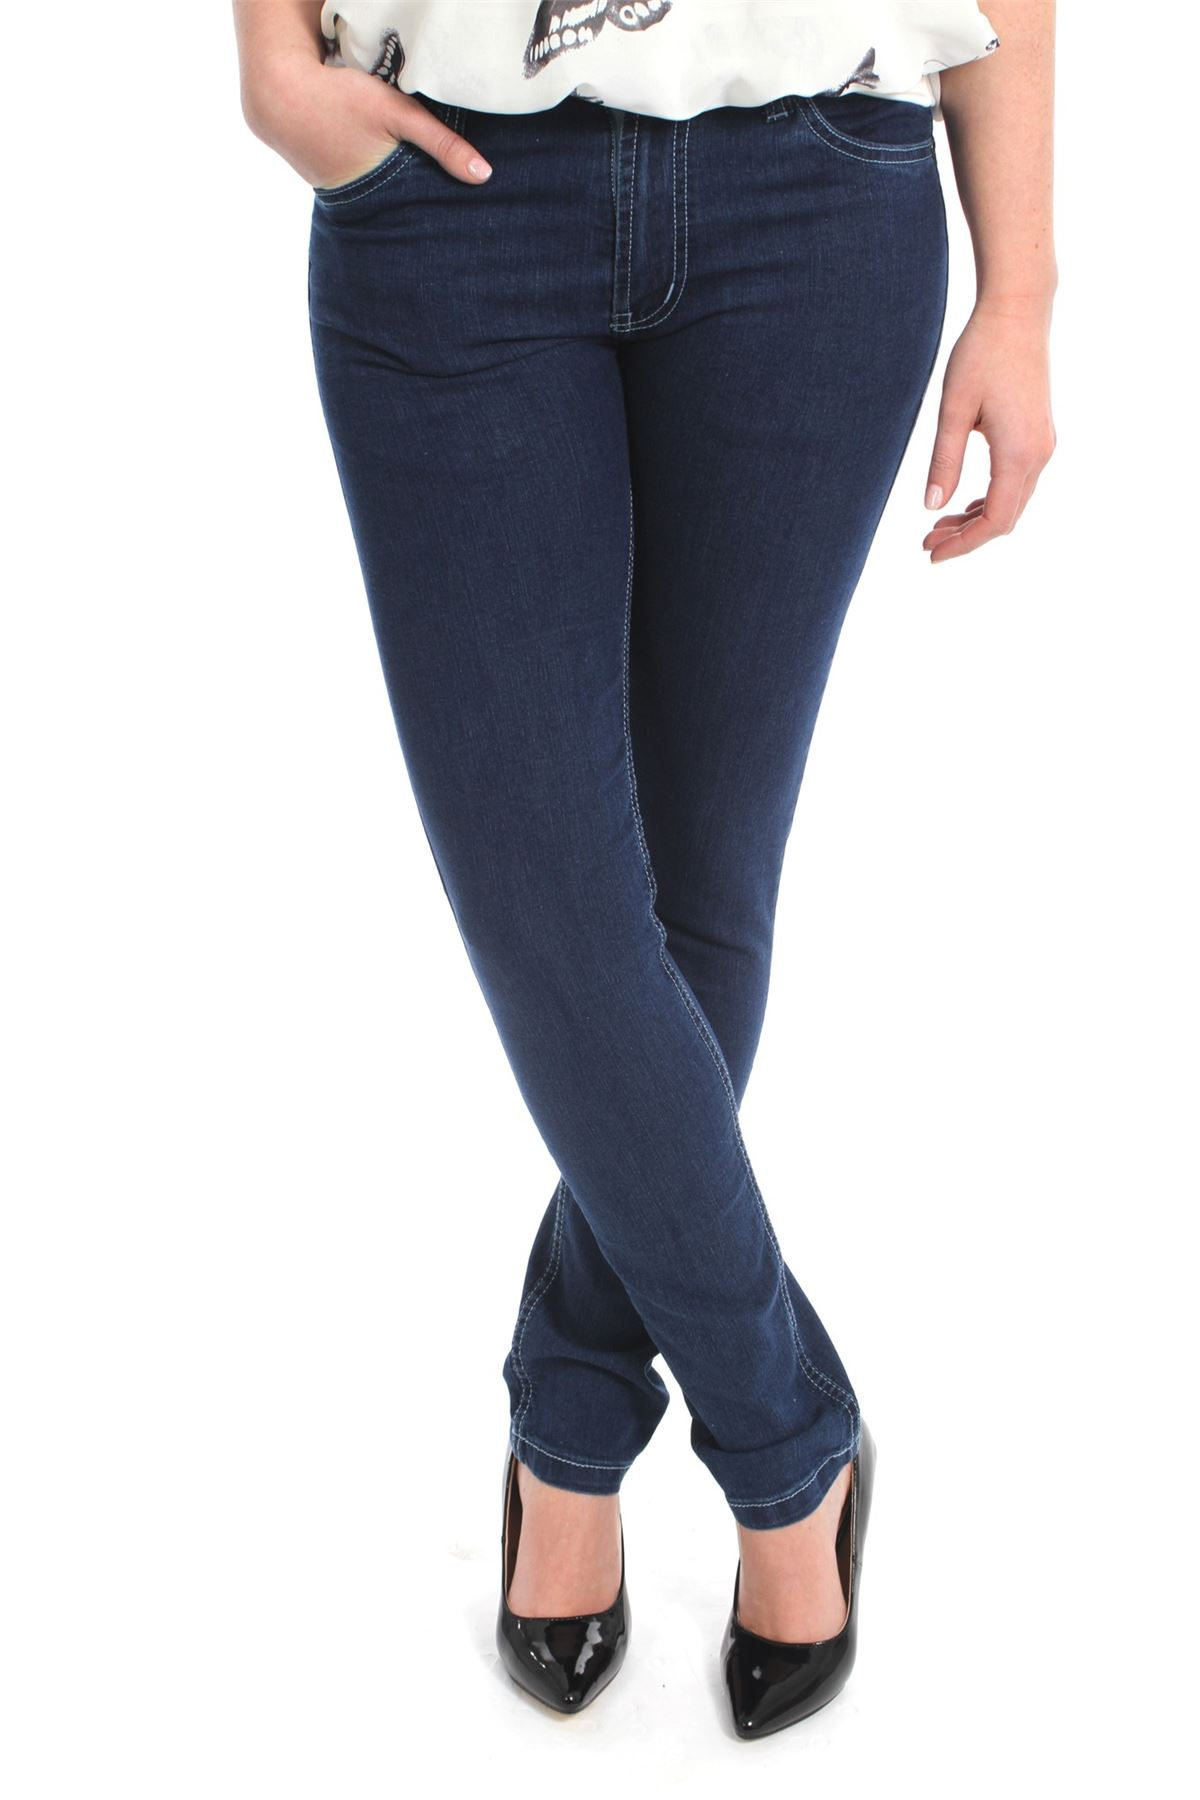 Discover Slim Jeans at ASOS. Shop from a range of slim jean styles, light to dark wash available from ASOS.